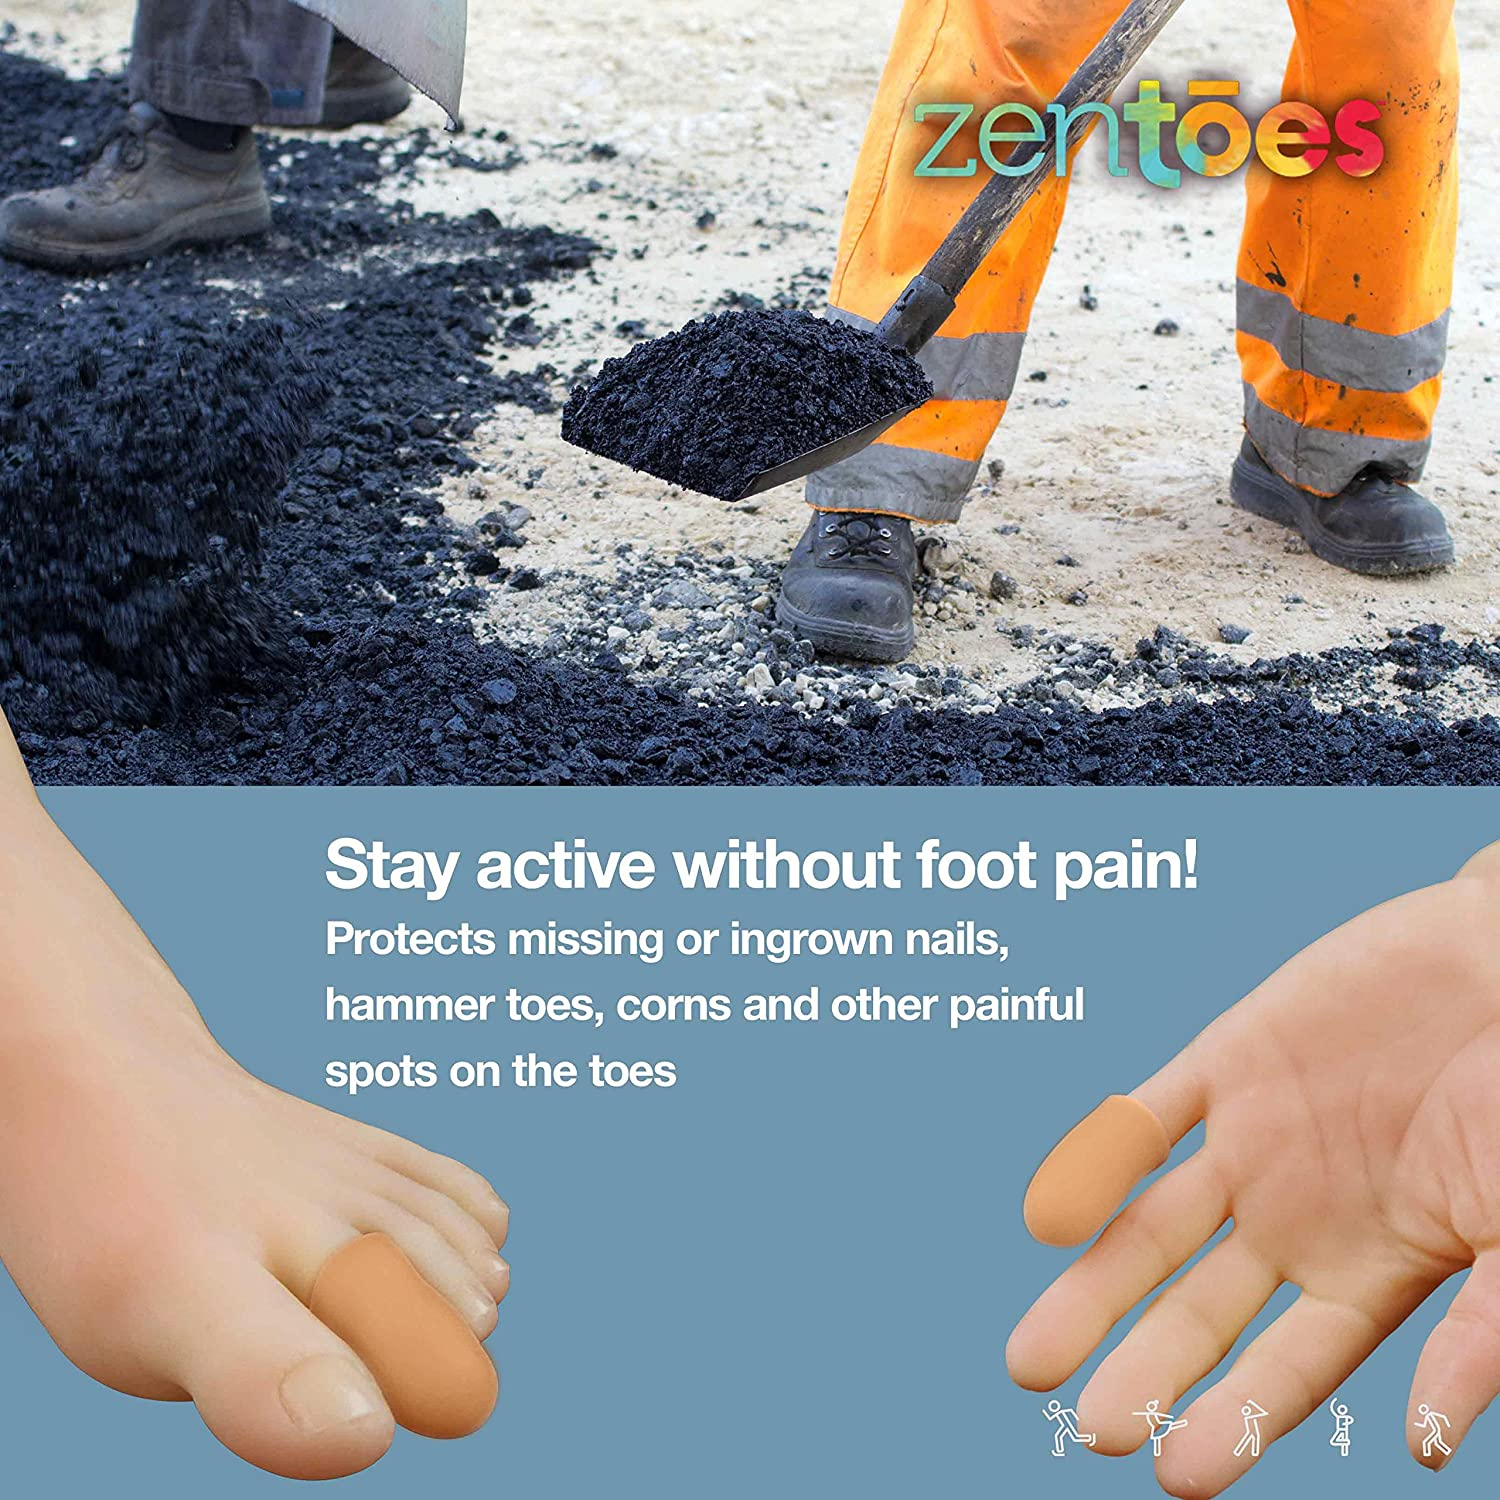 Amazon.com: ZenToes 6 Pack Gel Toe Cap and Protector - Cushions and ...